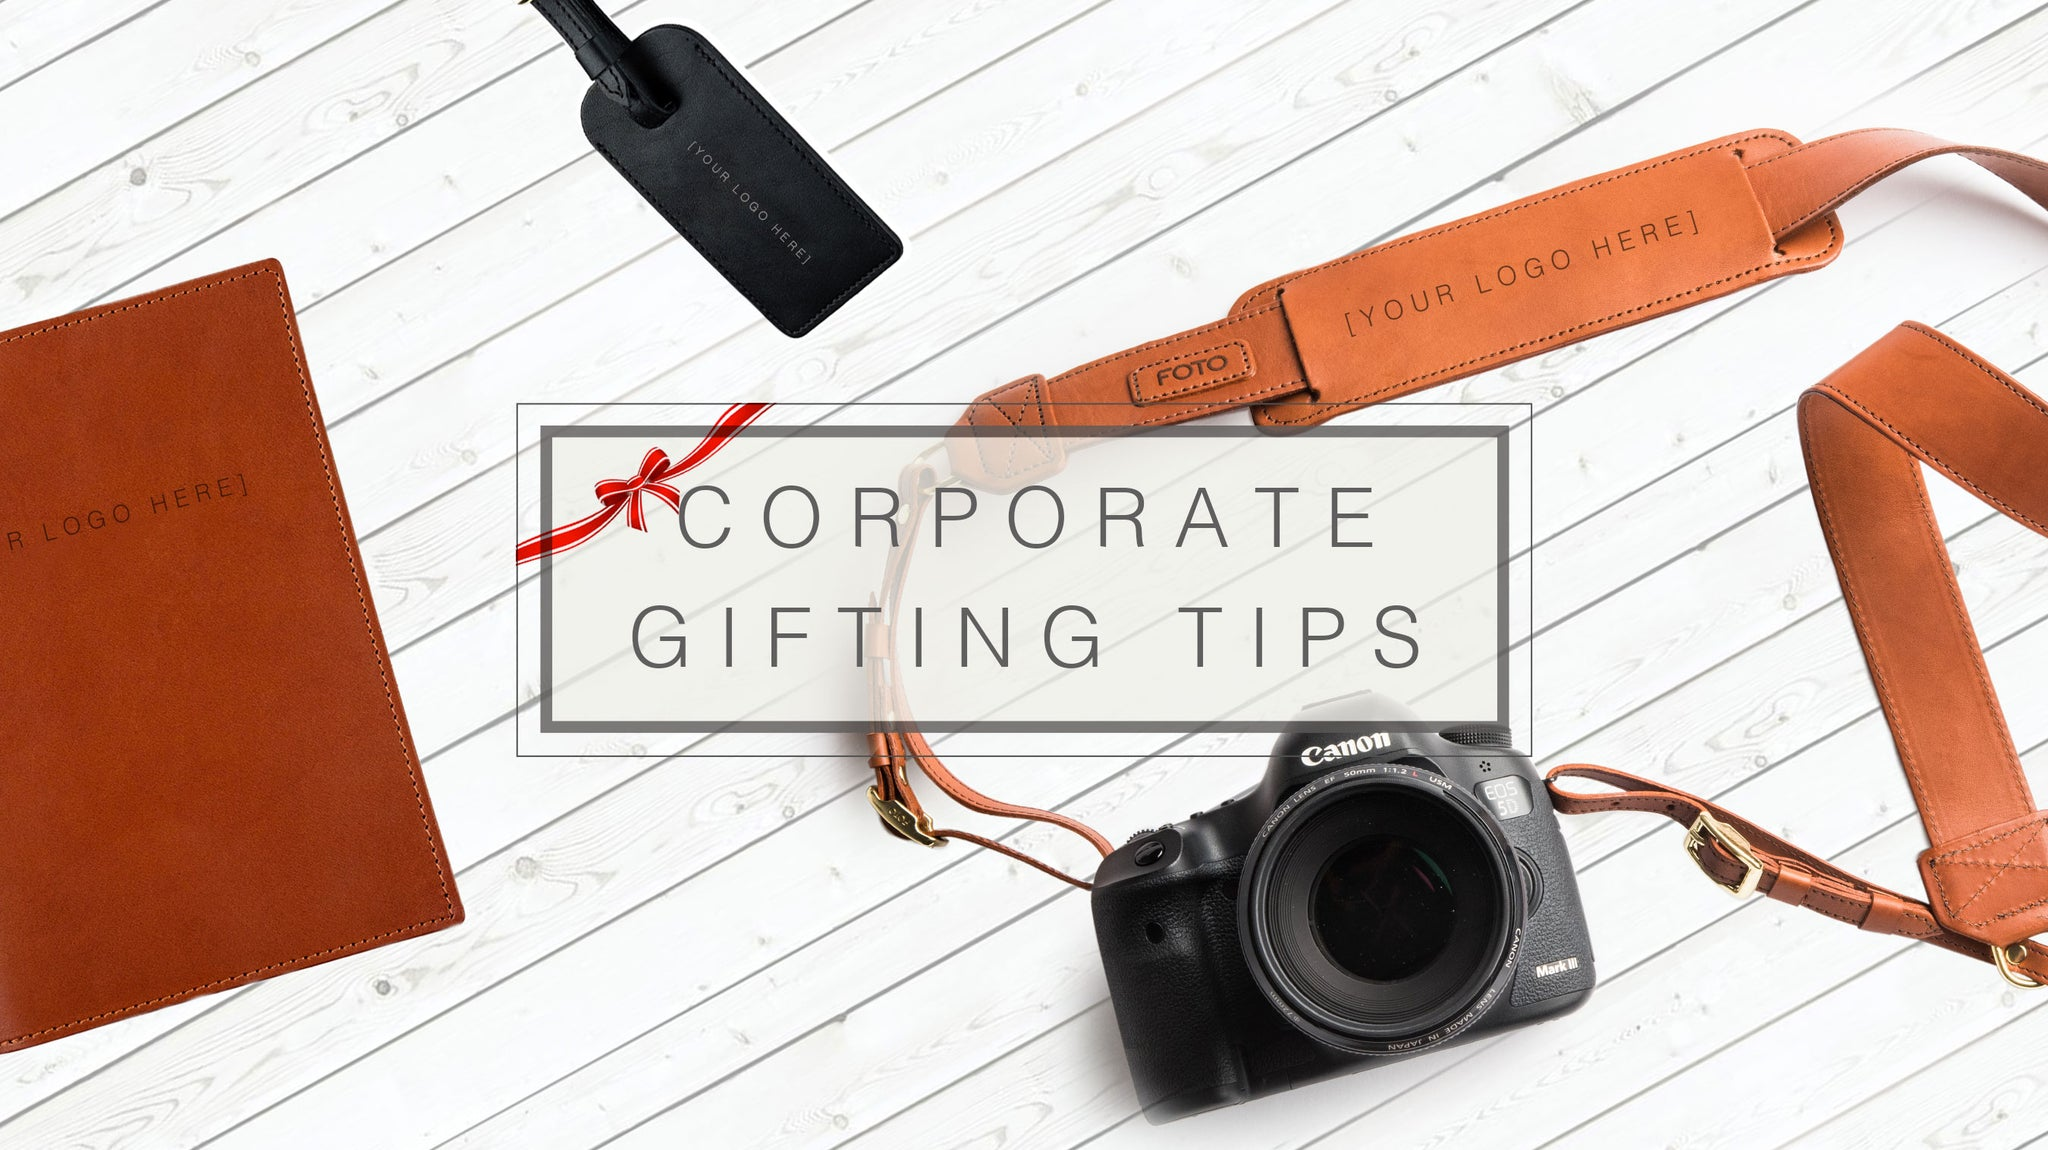 4 Things You Should Consider When Shopping for Corporate Gifts | FOTO Blog